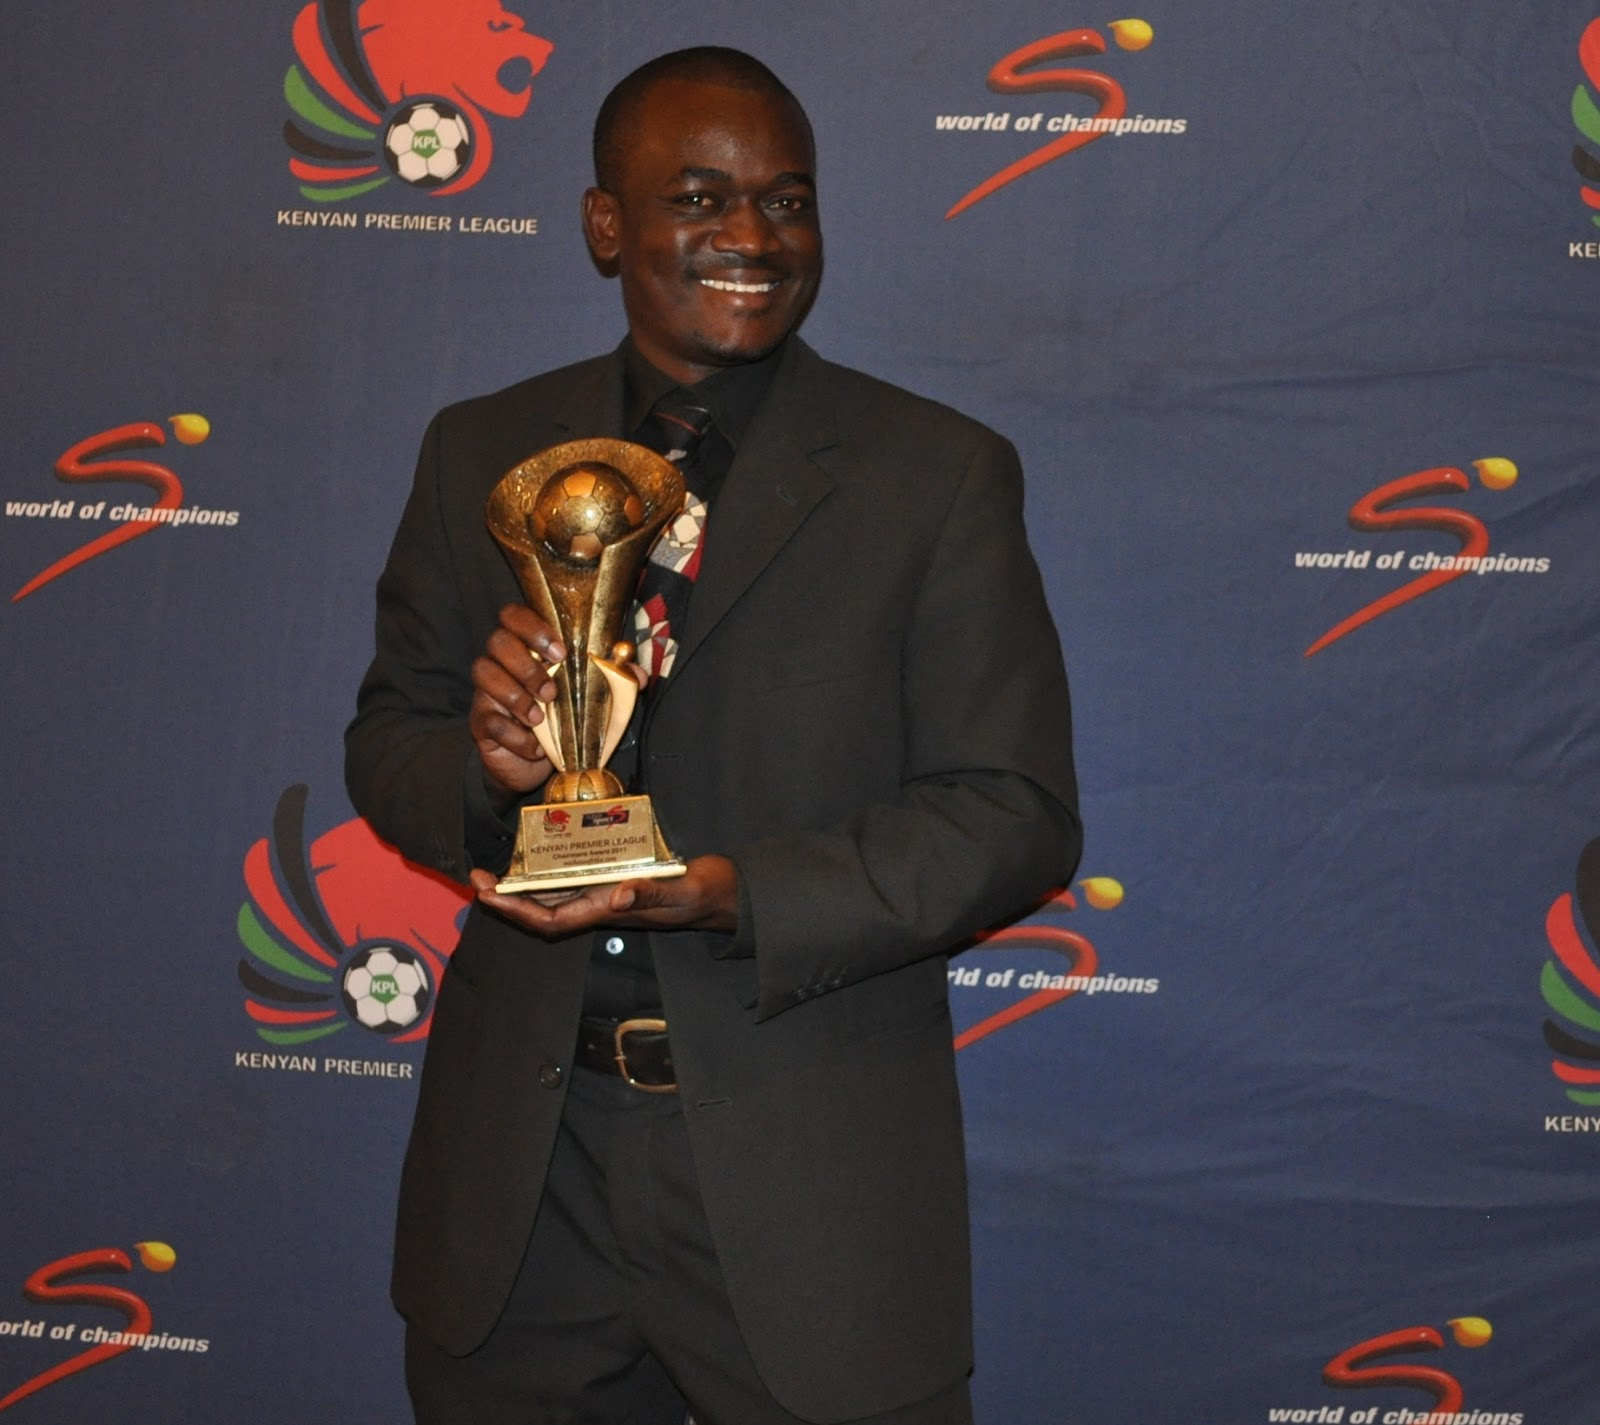 Hot Secrets: SPORTS WEBSITE WINS ICT AWARD